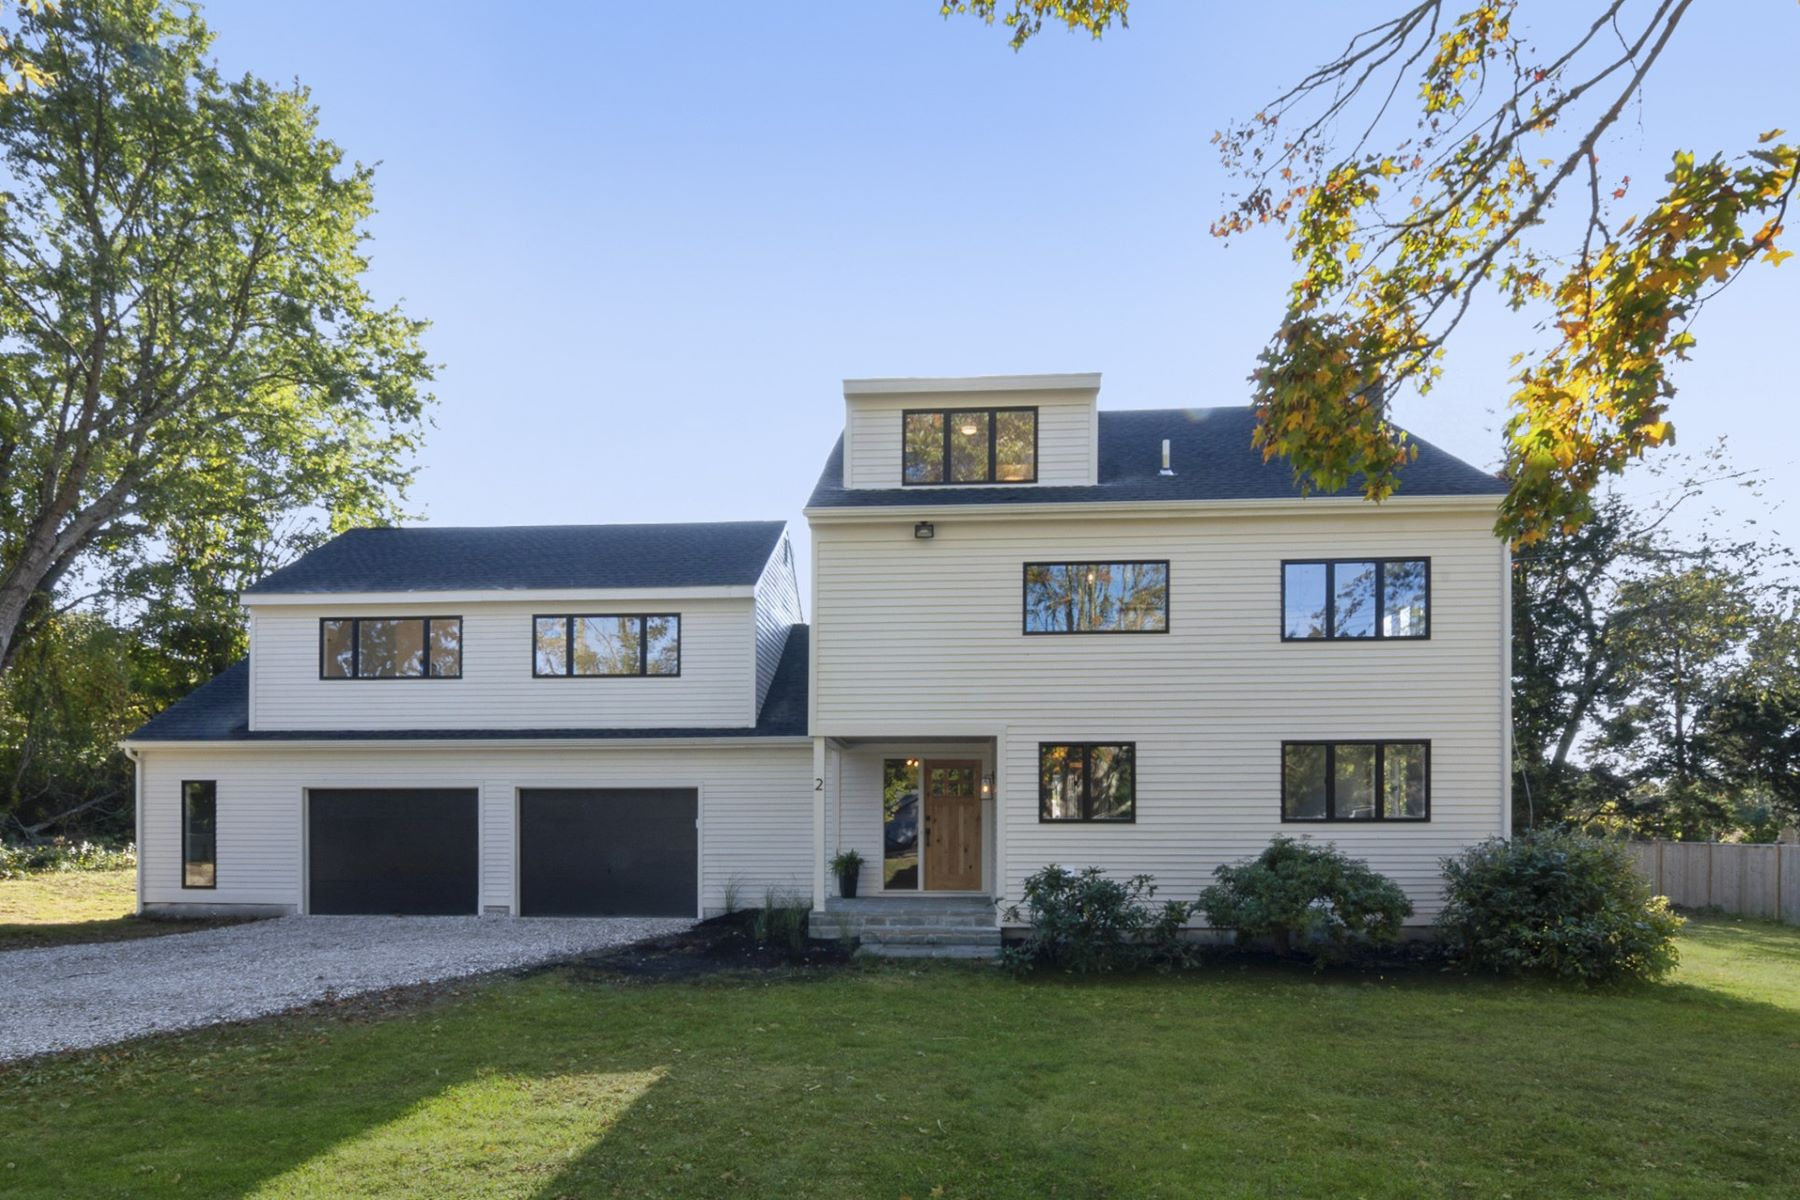 Single Family Homes for Sale at 2 Shepherds Run, Westerly, RI Westerly, Rhode Island 02891 United States